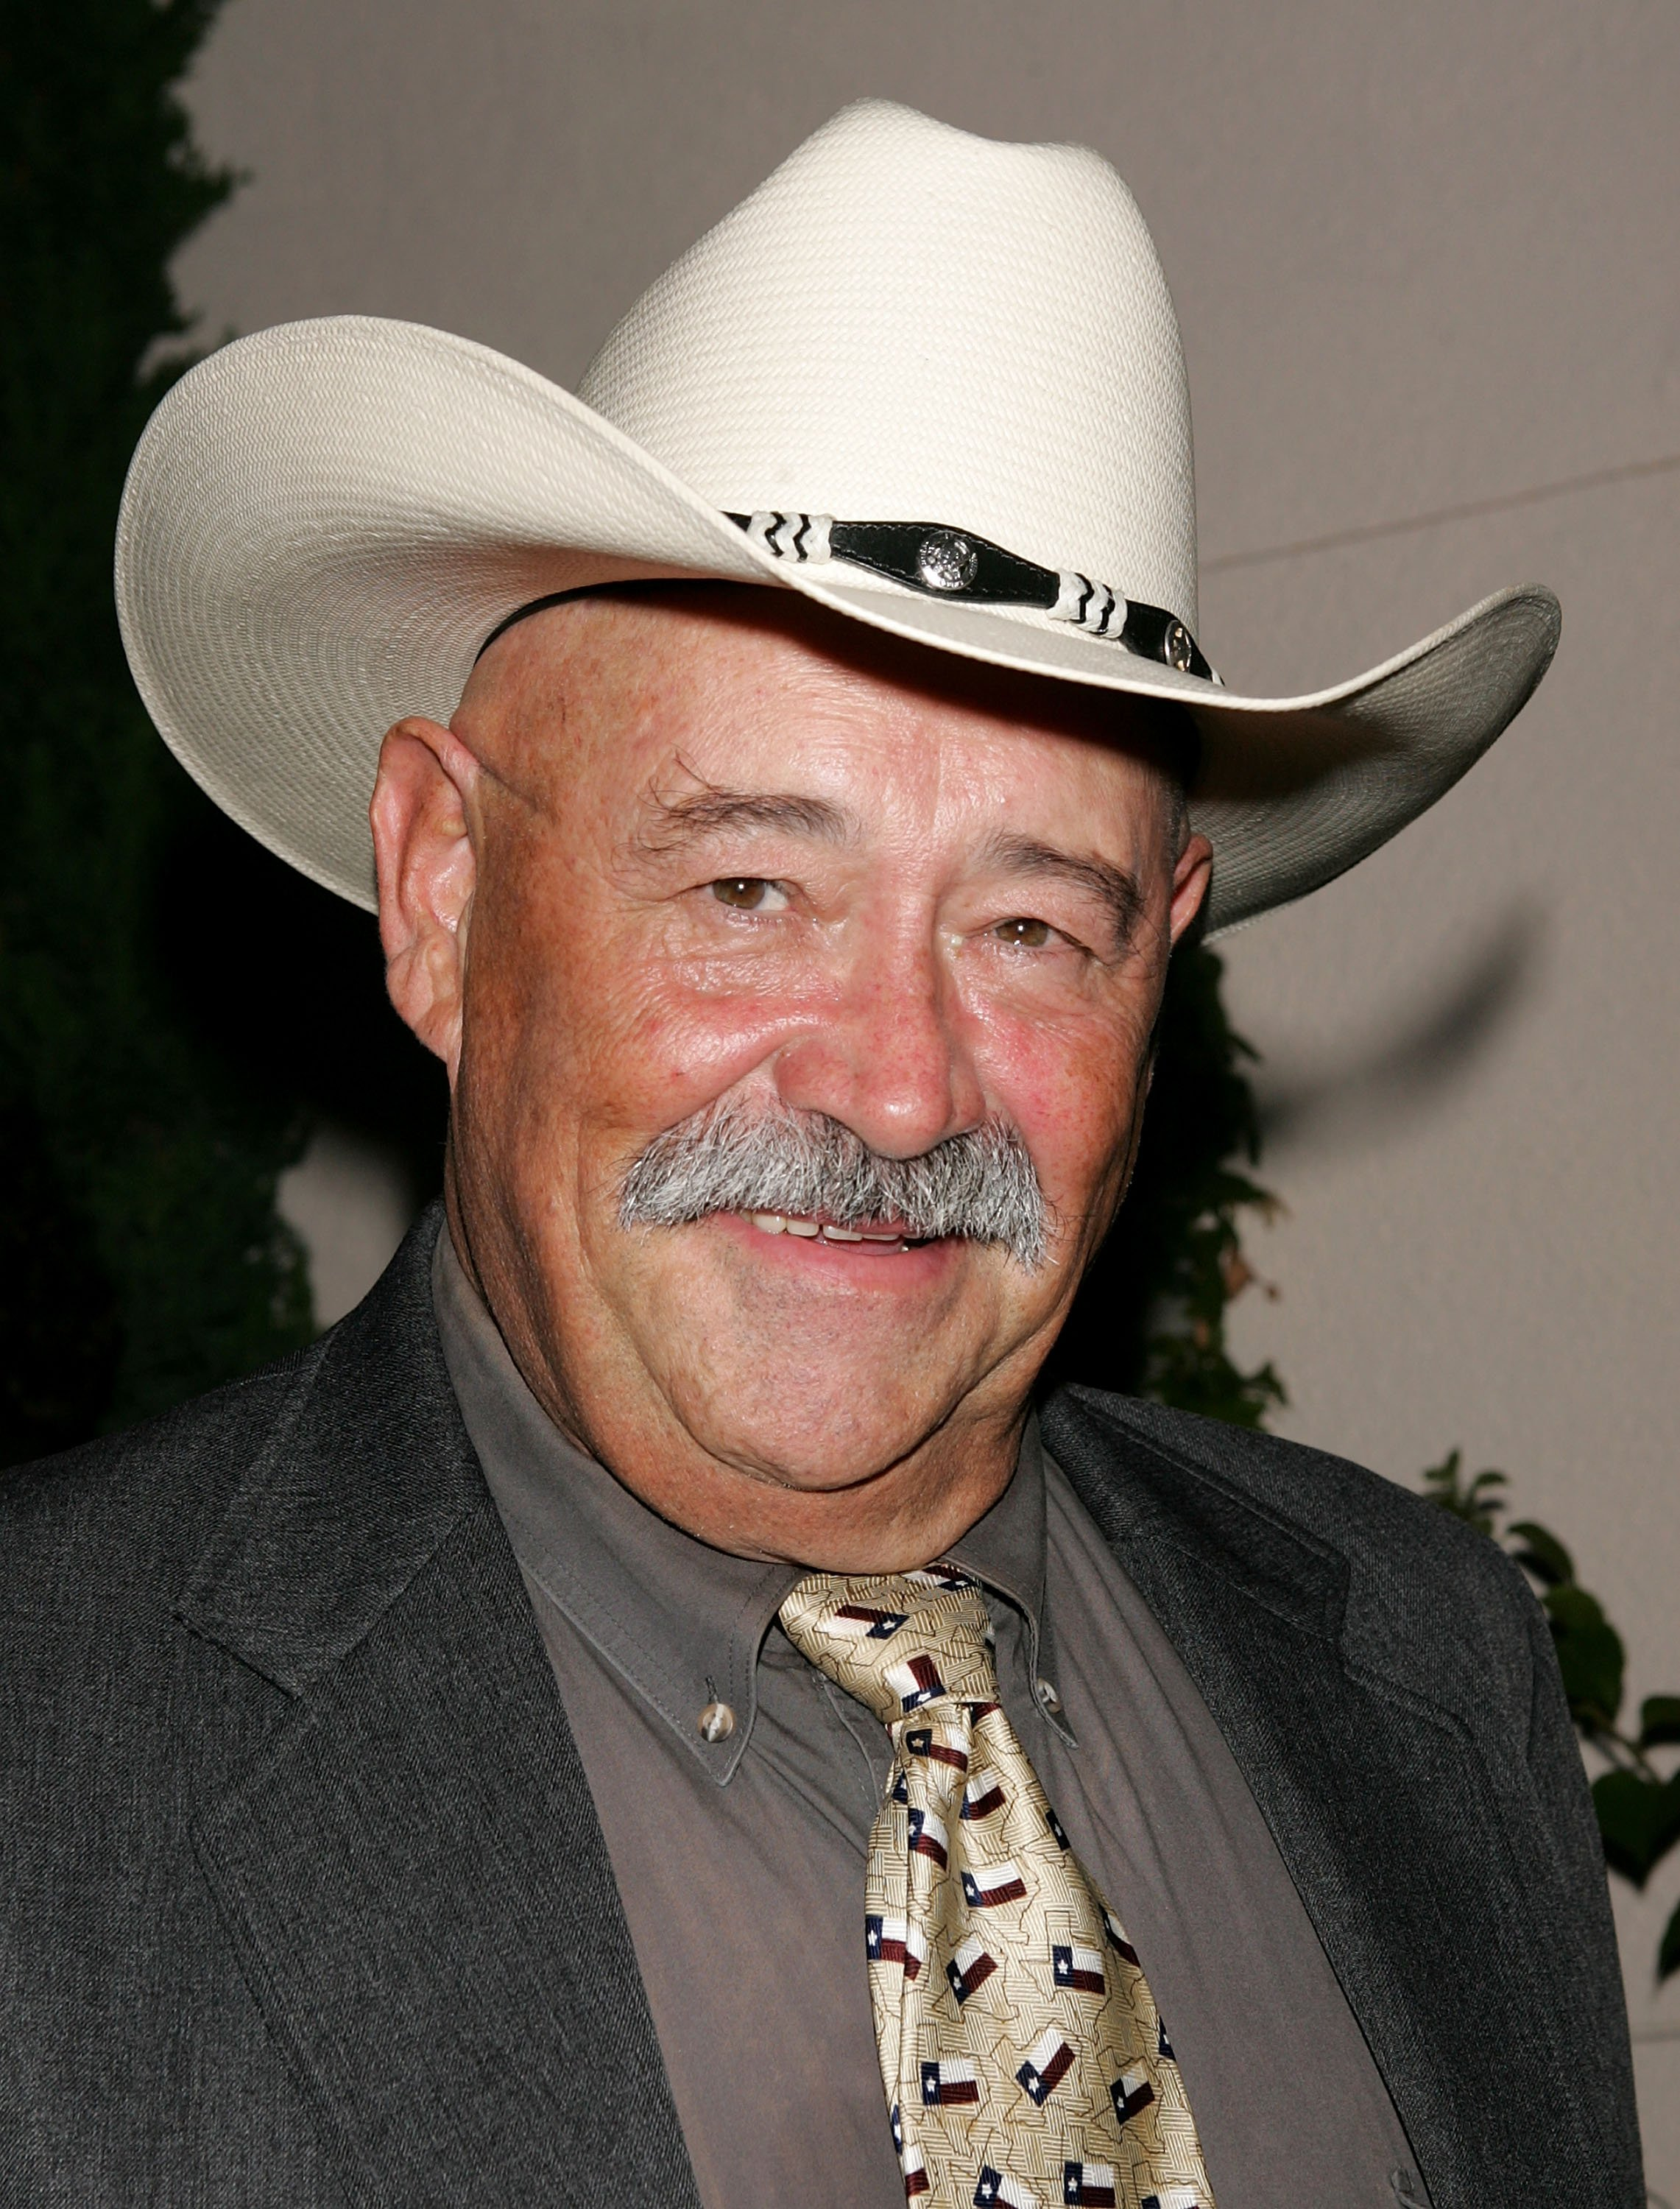 Barry Corbin. I Image: Getty Images.